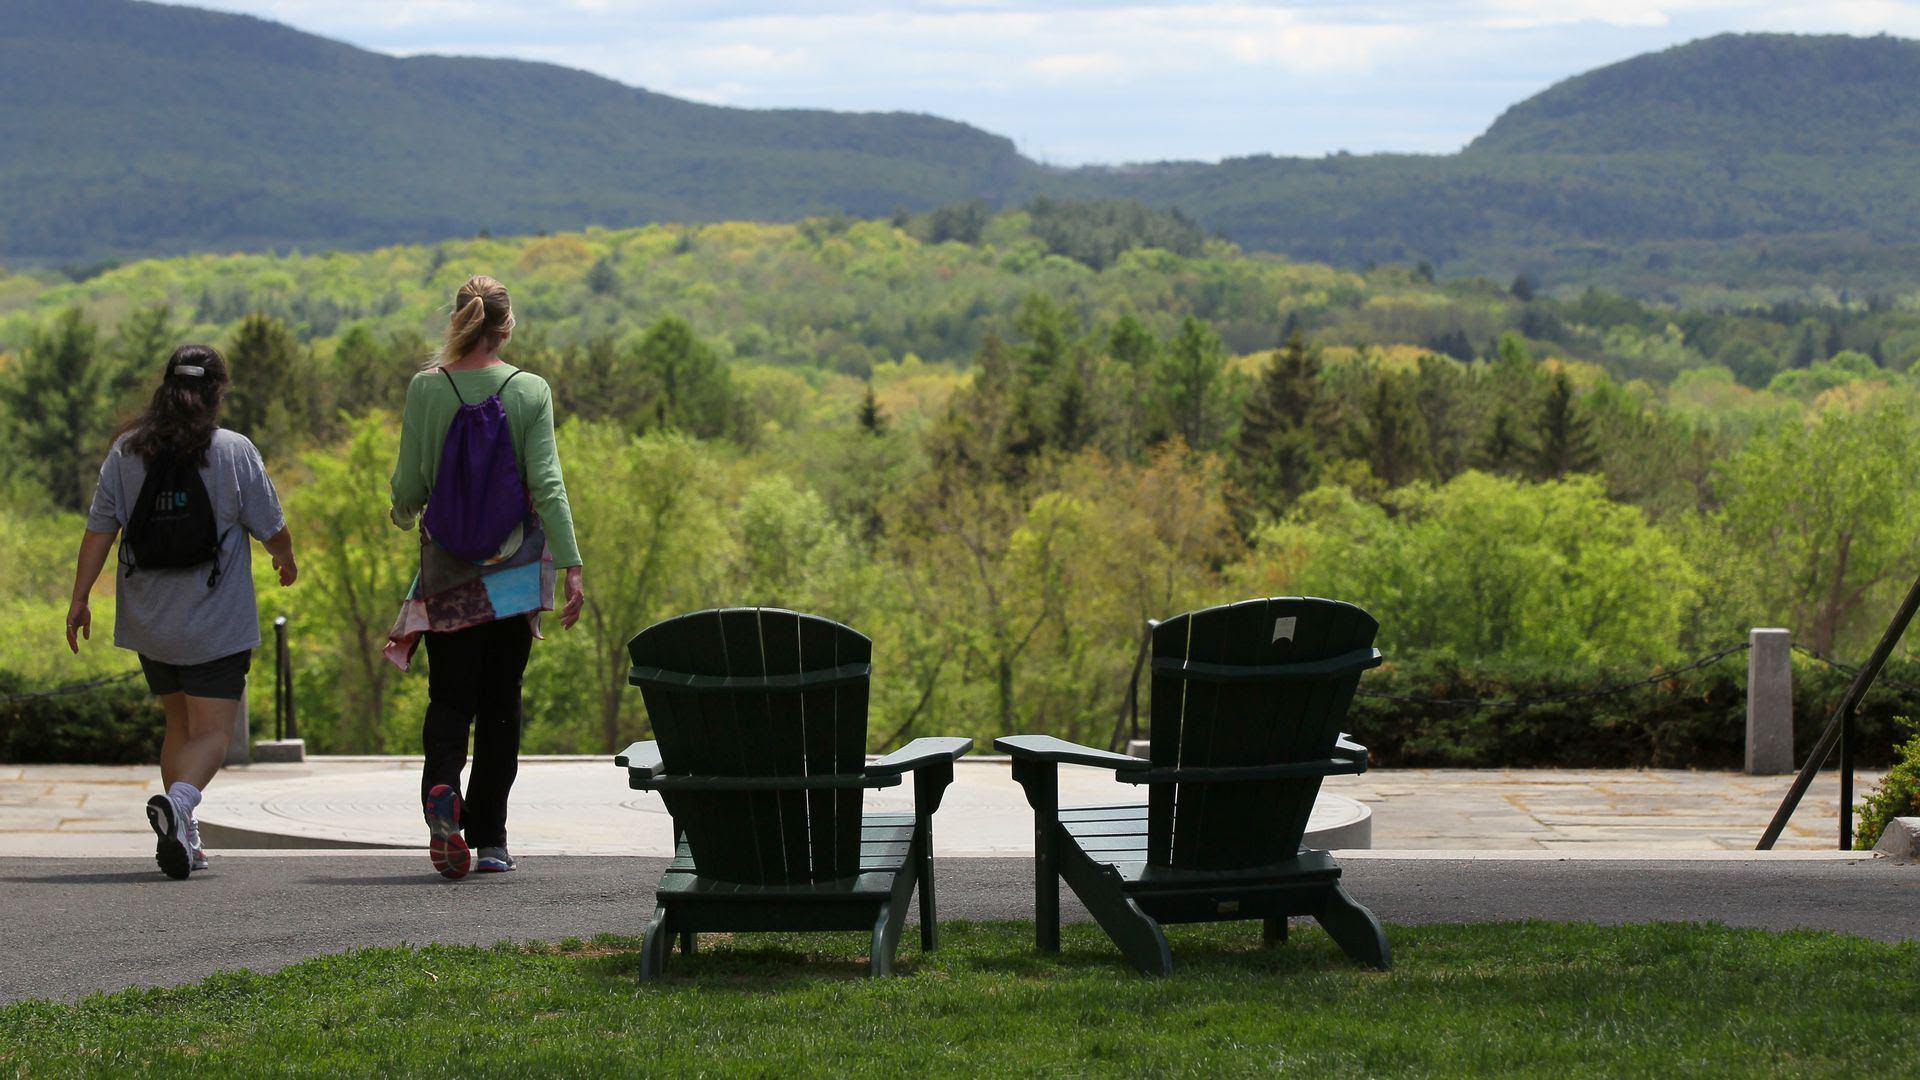 Amherst College campus. Photo: Joanne Rathe/The Boston Globe via Getty Images